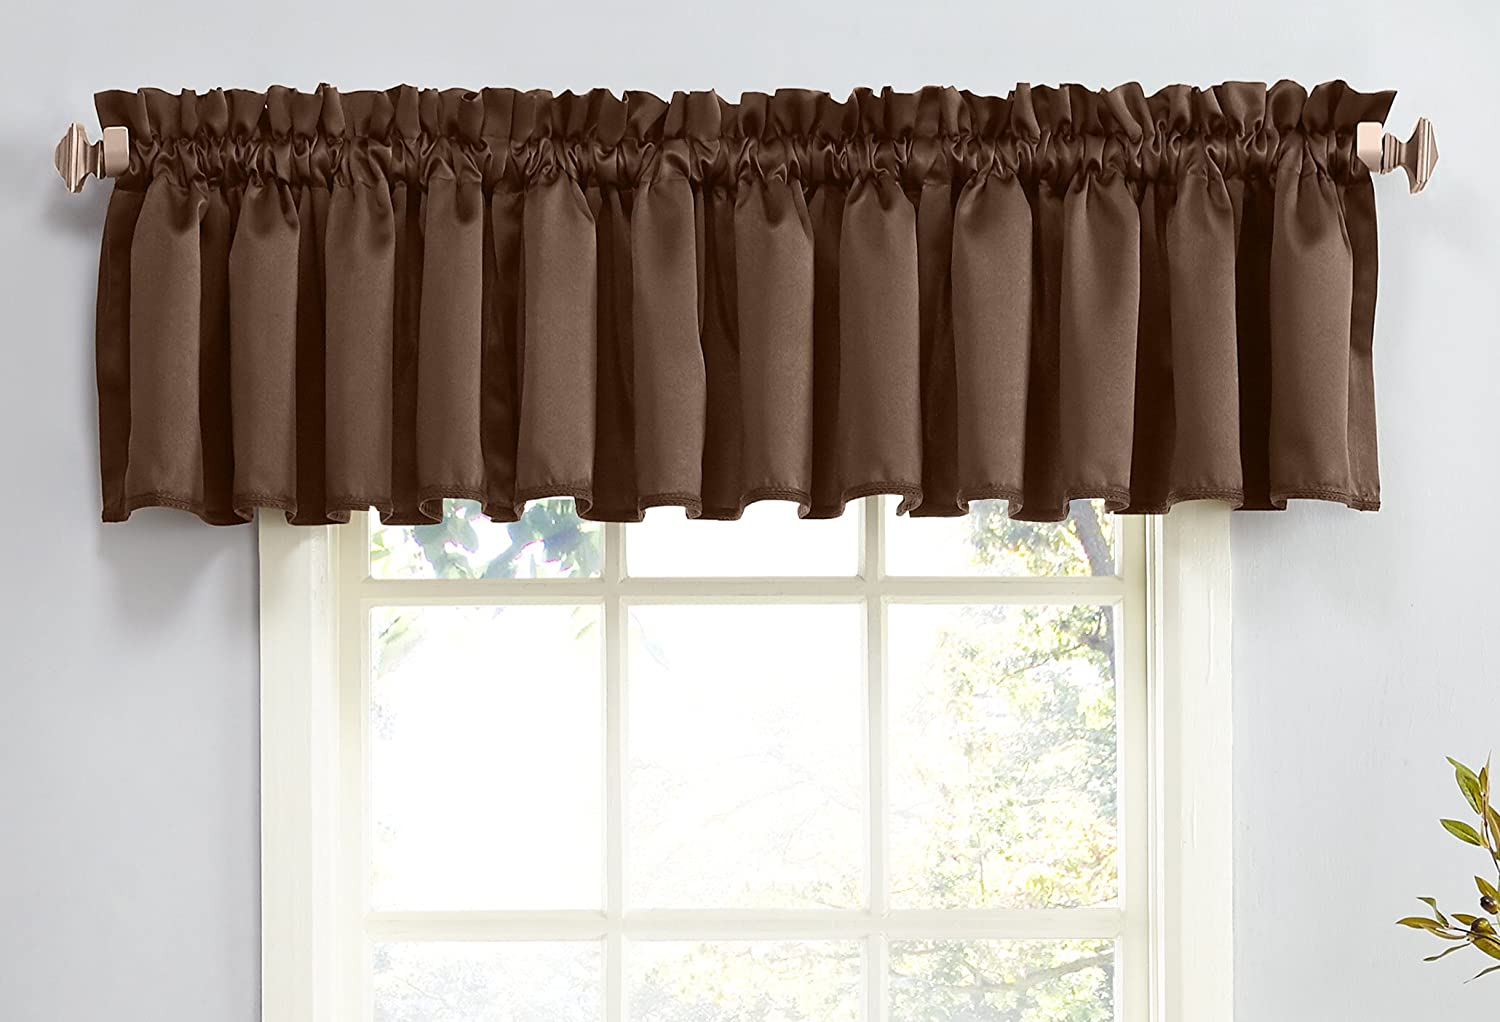 "Sun Zero Barrow Energy Efficient Rod Pocket Curtain Valance, 54"" x 18"", Chocolate Brown"